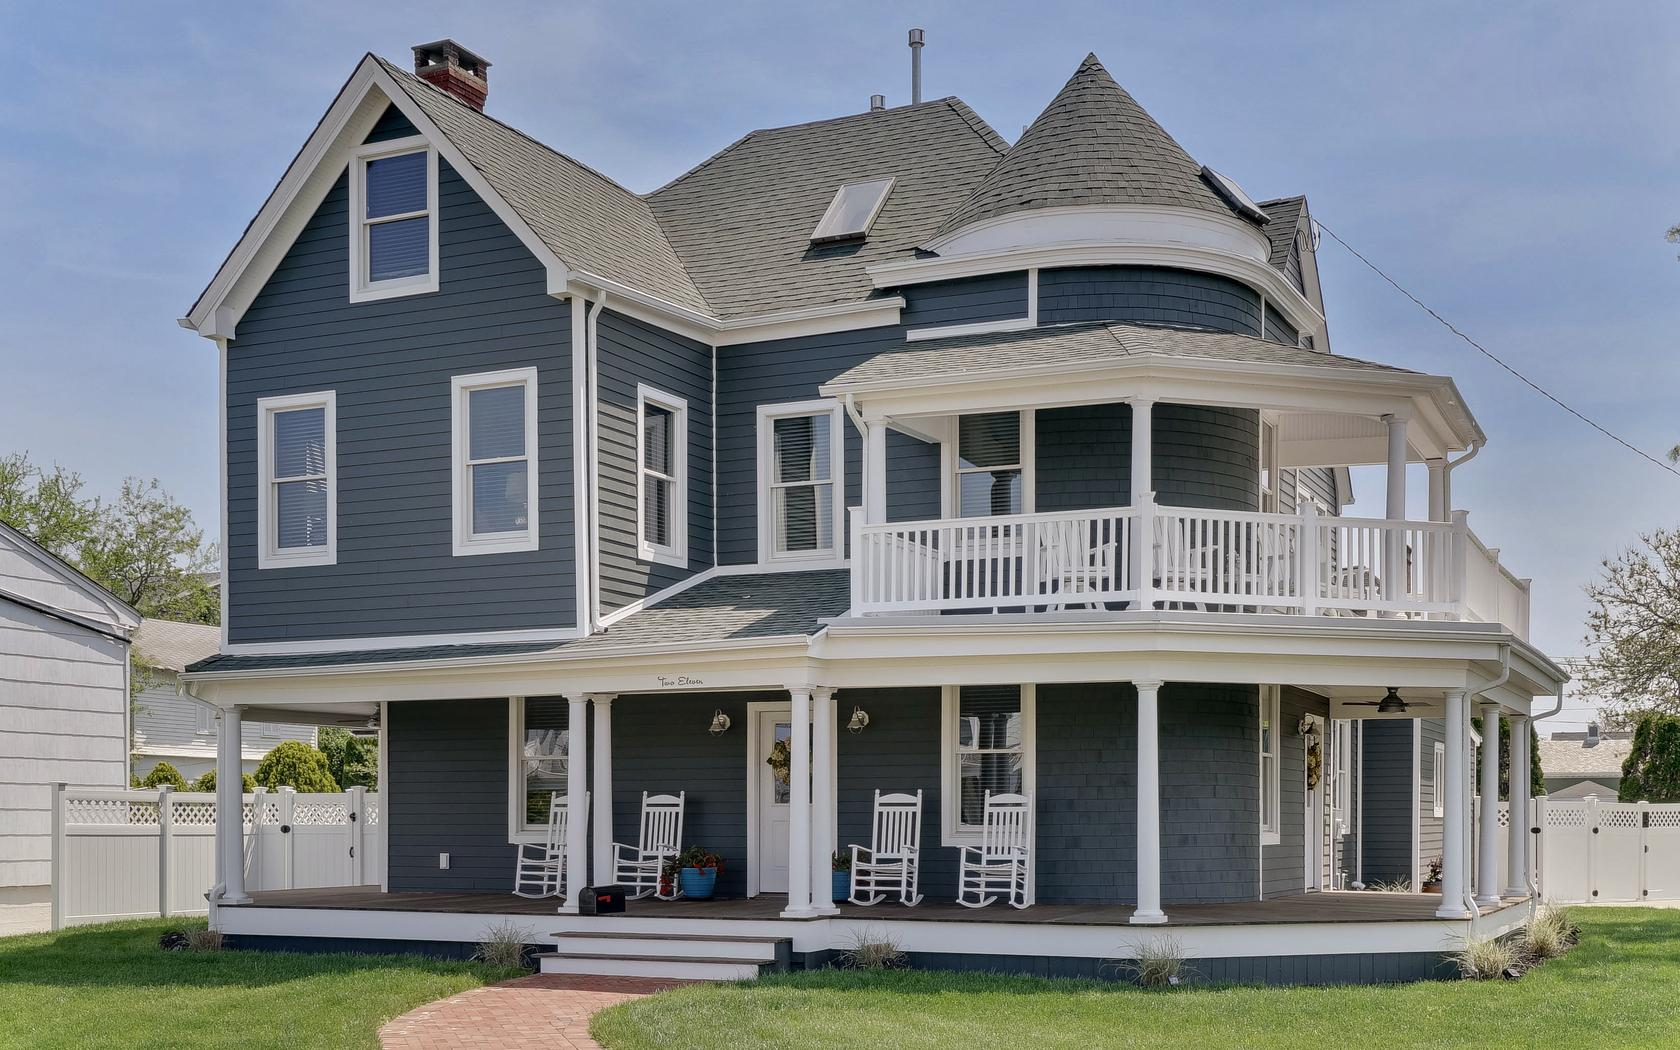 Single Family Home for Sale at Fabulous Classic Charming Seashore Colonial 211 First Avenue Belmar, 07719 United States